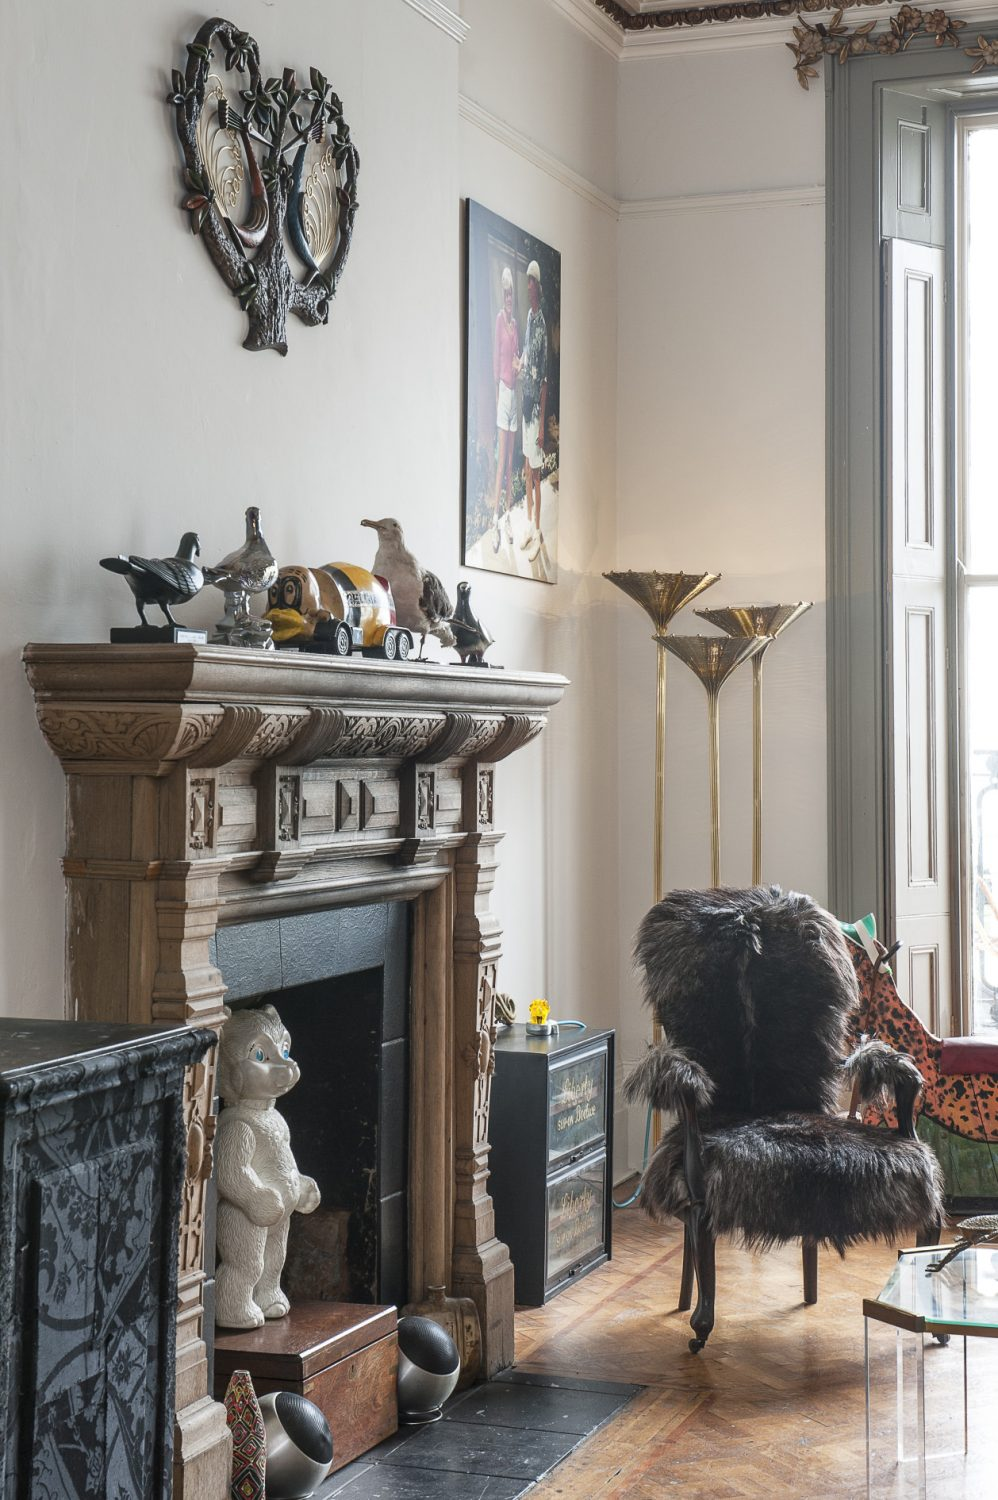 The focus of the room is still the original impressive fireplace although a previous owner has stripped it back to the bare wood and the couple have decided not to re-marble it